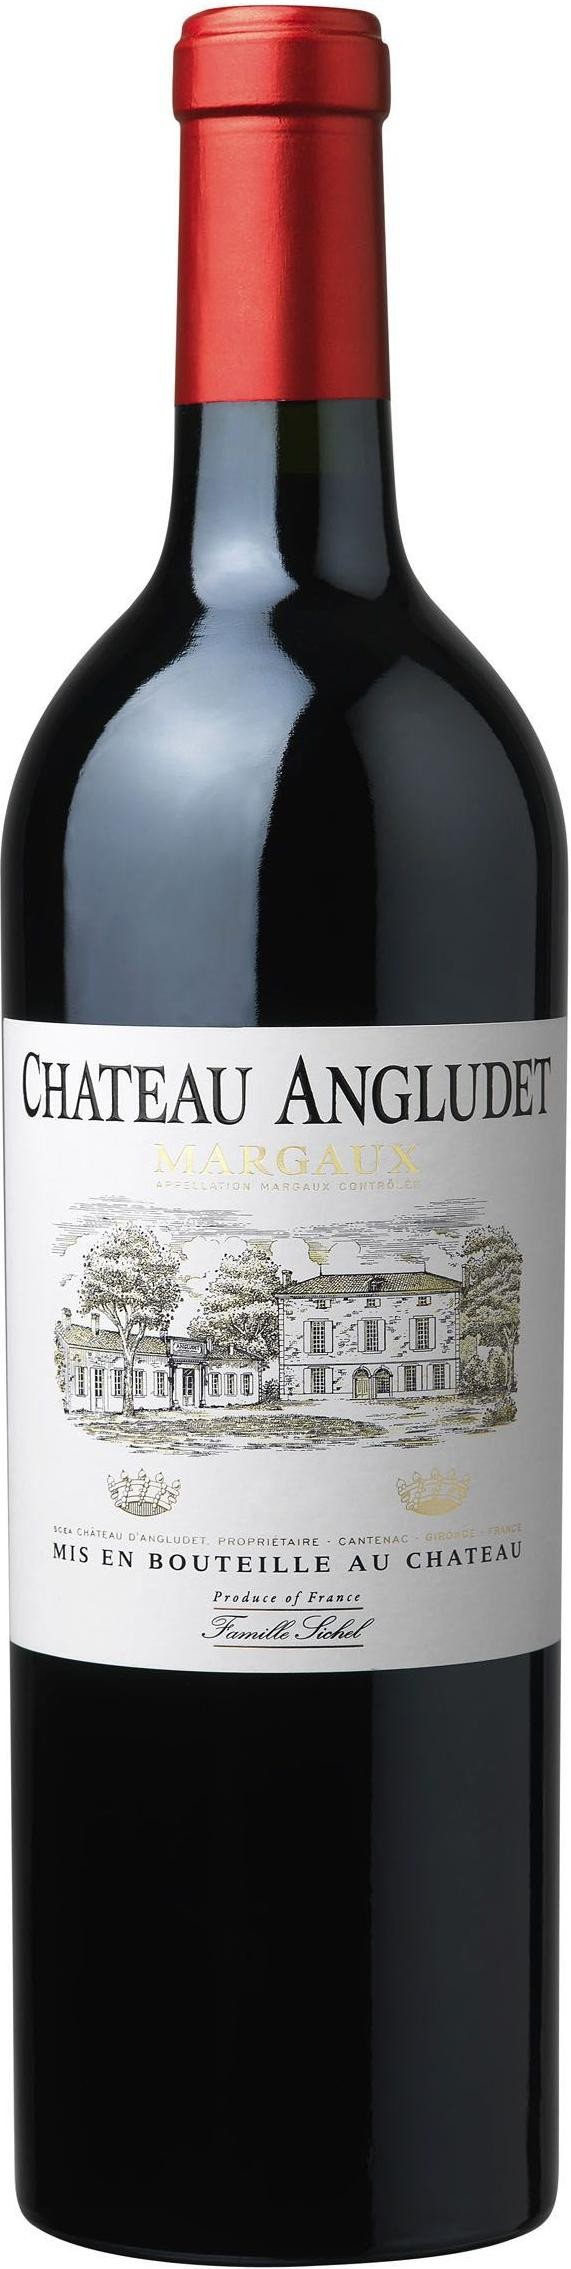 Chateau Angludet - Margaux - Magnum, 2009